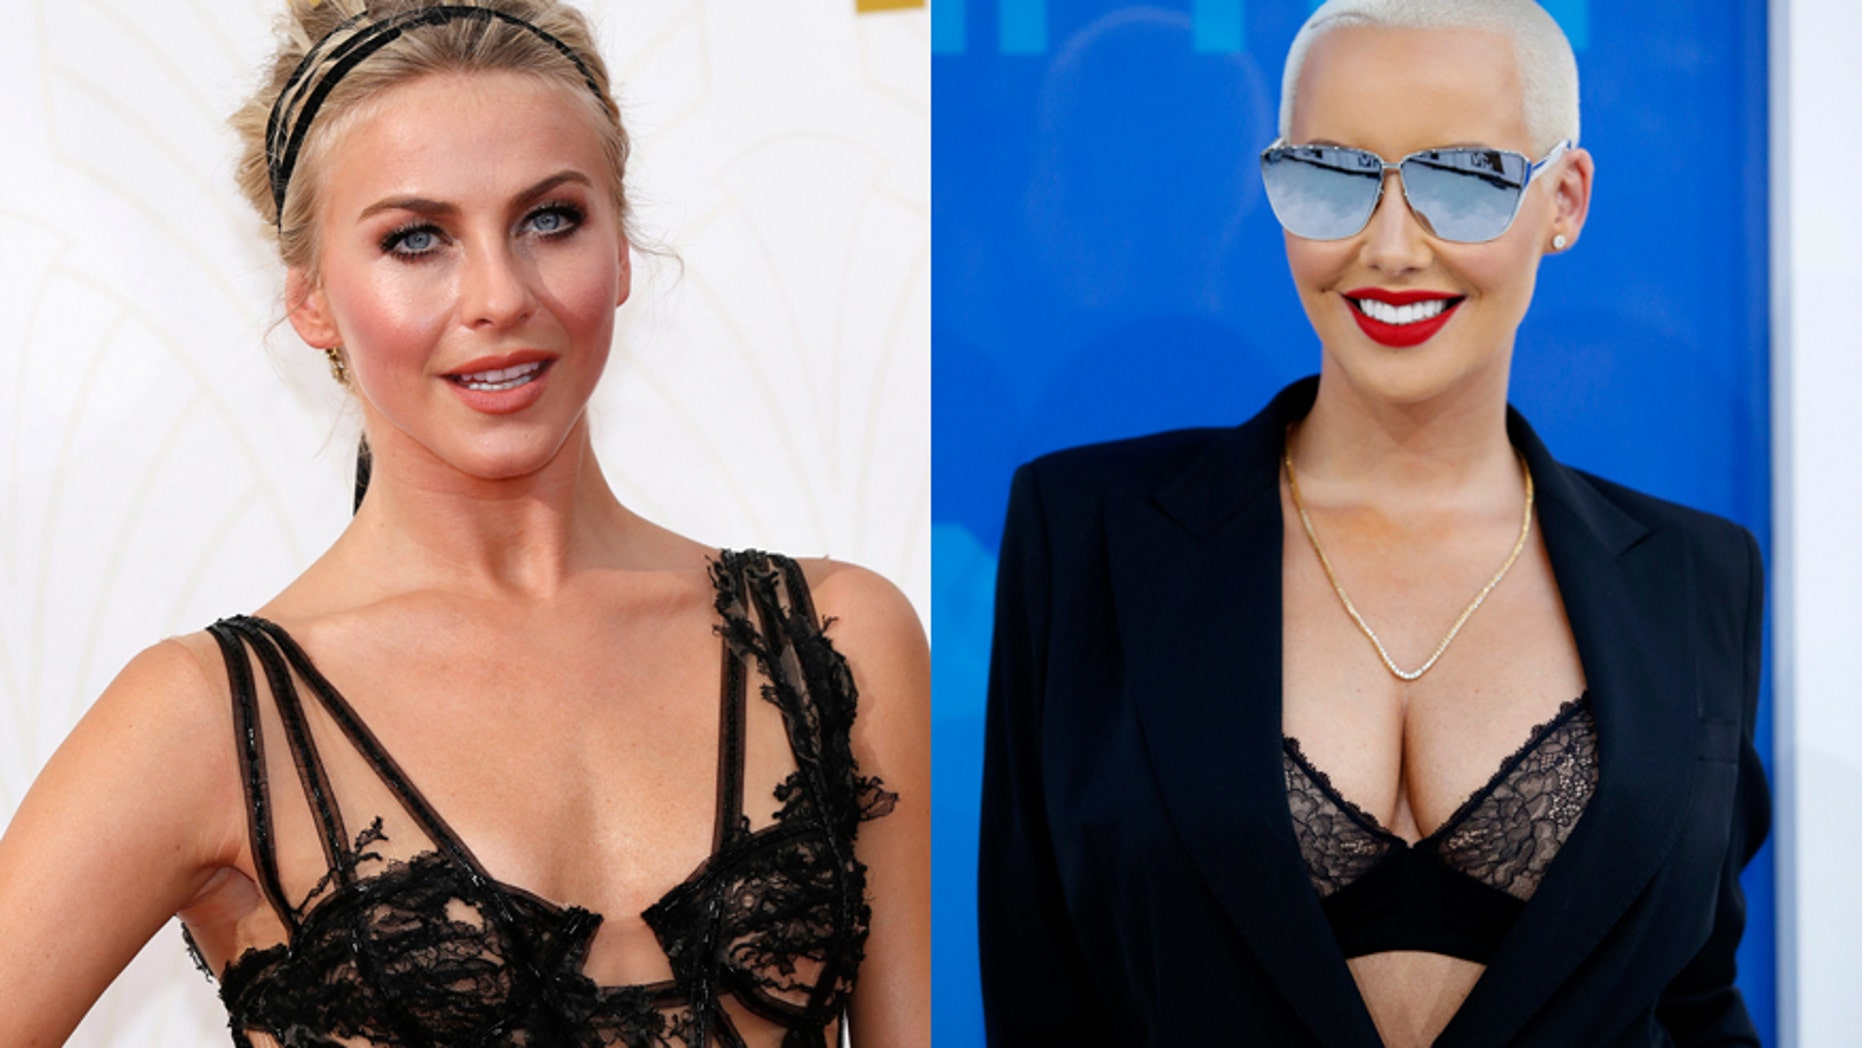 Julianne Hough (left) and Amber Rose.